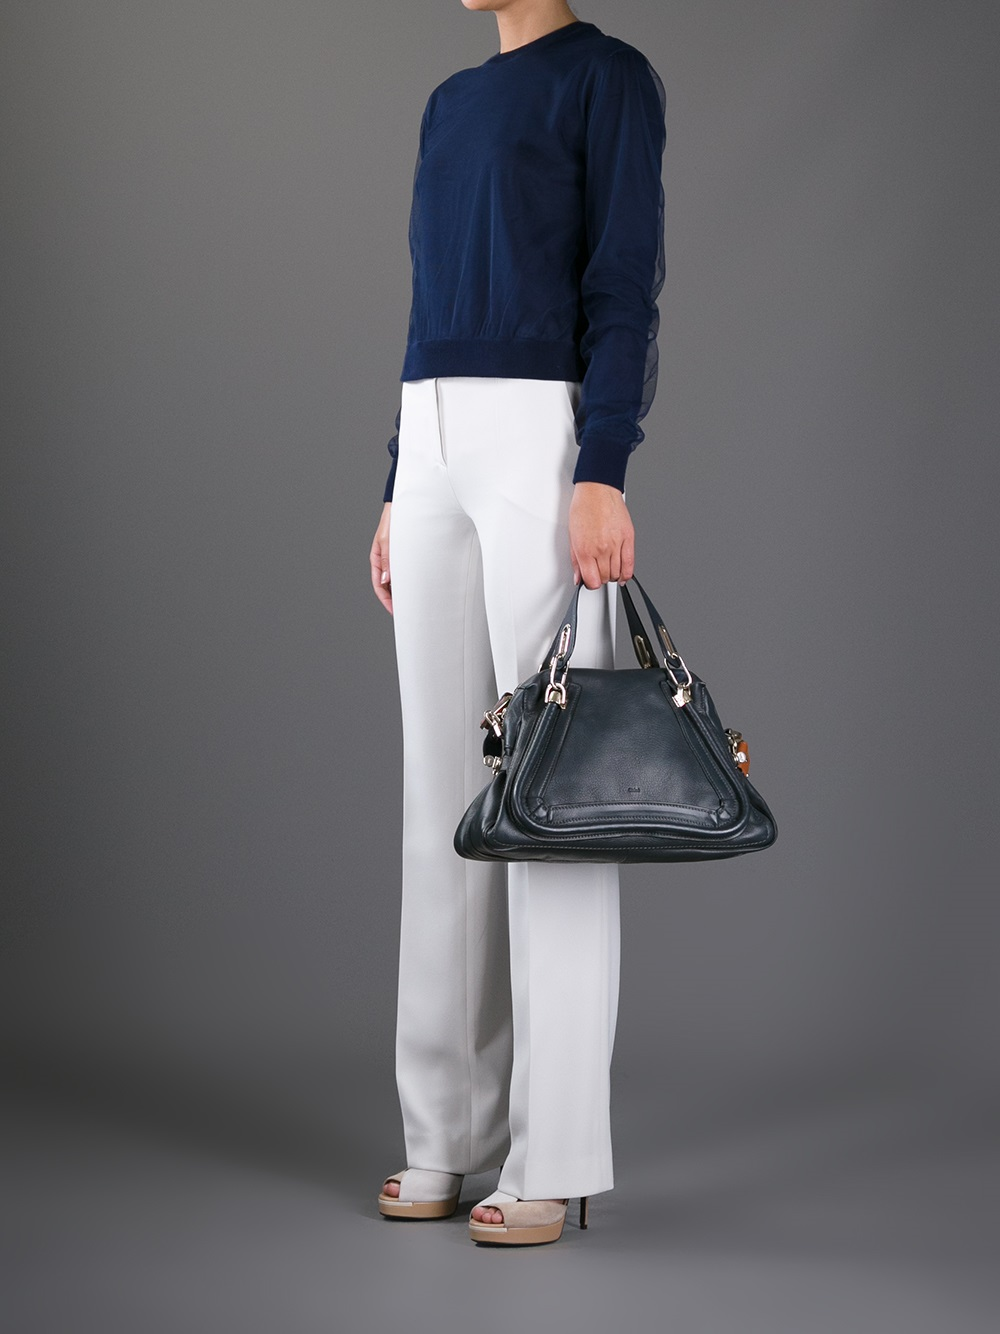 Chlo¨¦ Paraty Tote in Blue | Lyst